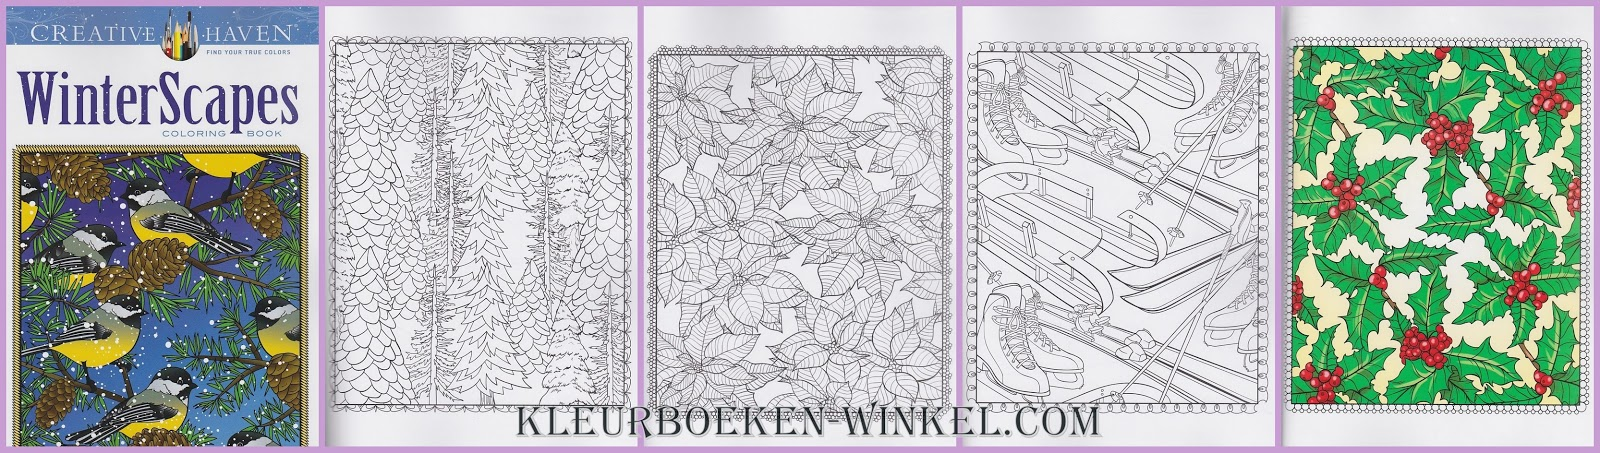 CH 67 winter scapes, kleurboek Creative Haven, kerst en winter